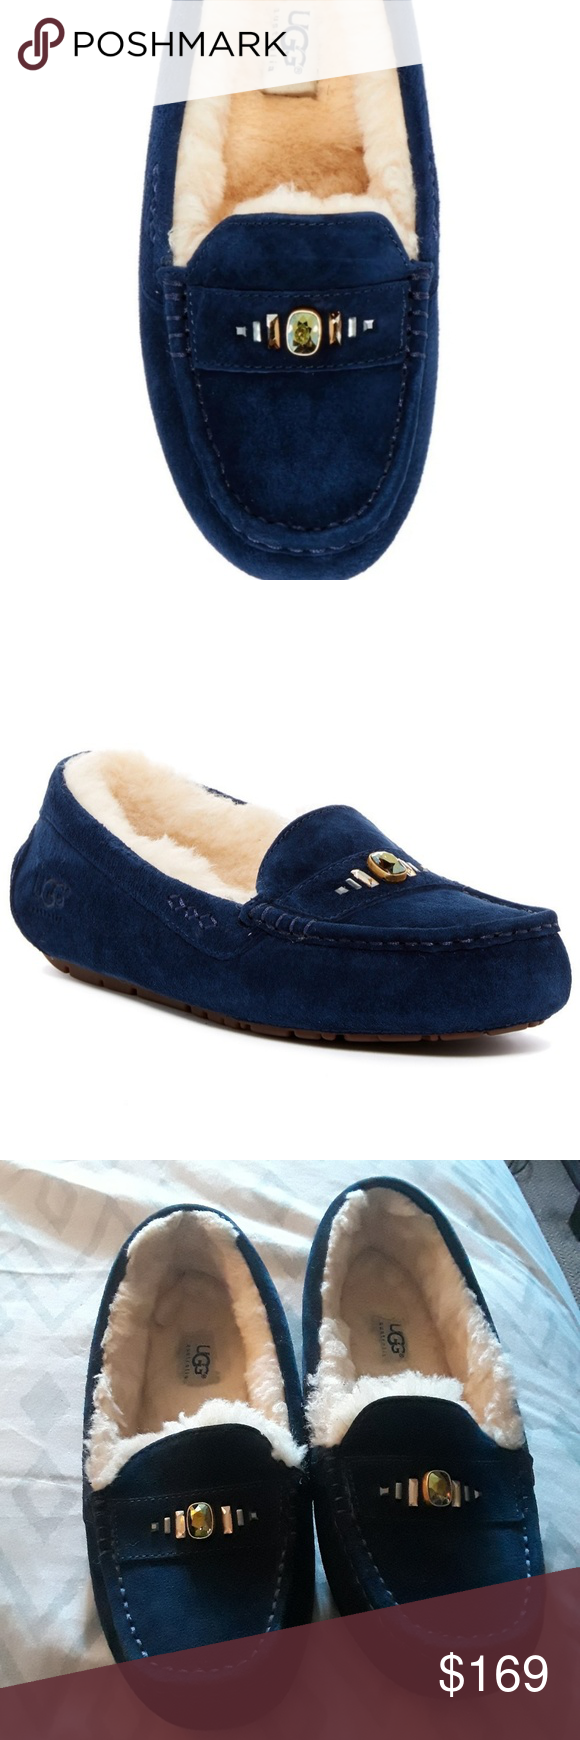 3d676132fc5 NEW Ugg Ansley Chunky Crystal Moccasins SZ 9 Blue These Ugg Ansley ...